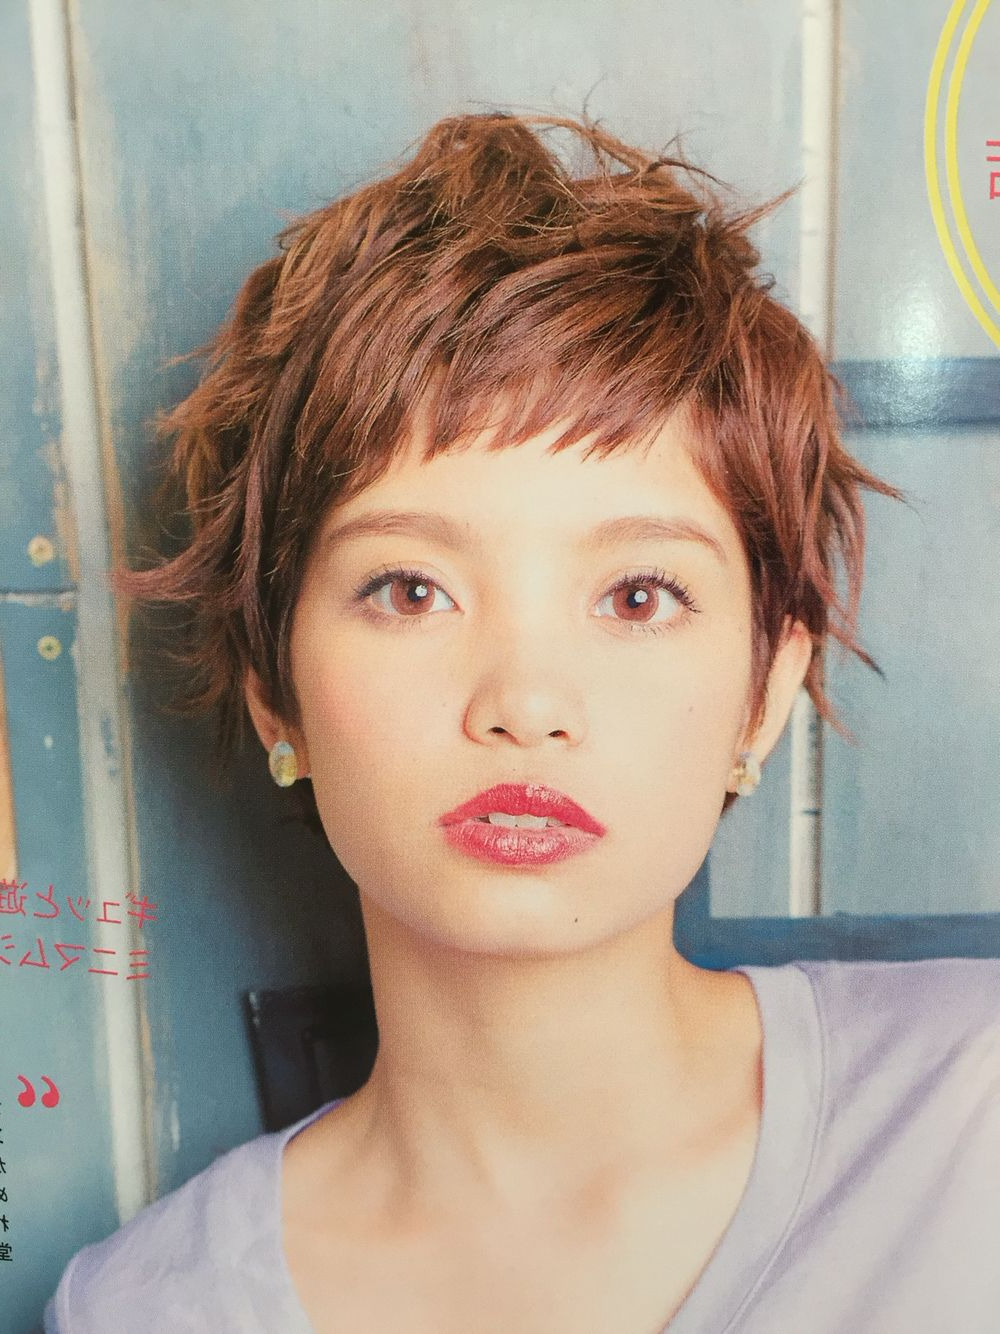 Short Choppy Haircut | Stylish Short Haircuts In 2018 | Pinterest Regarding Layered Pixie Hairstyles With Textured Bangs (View 7 of 20)